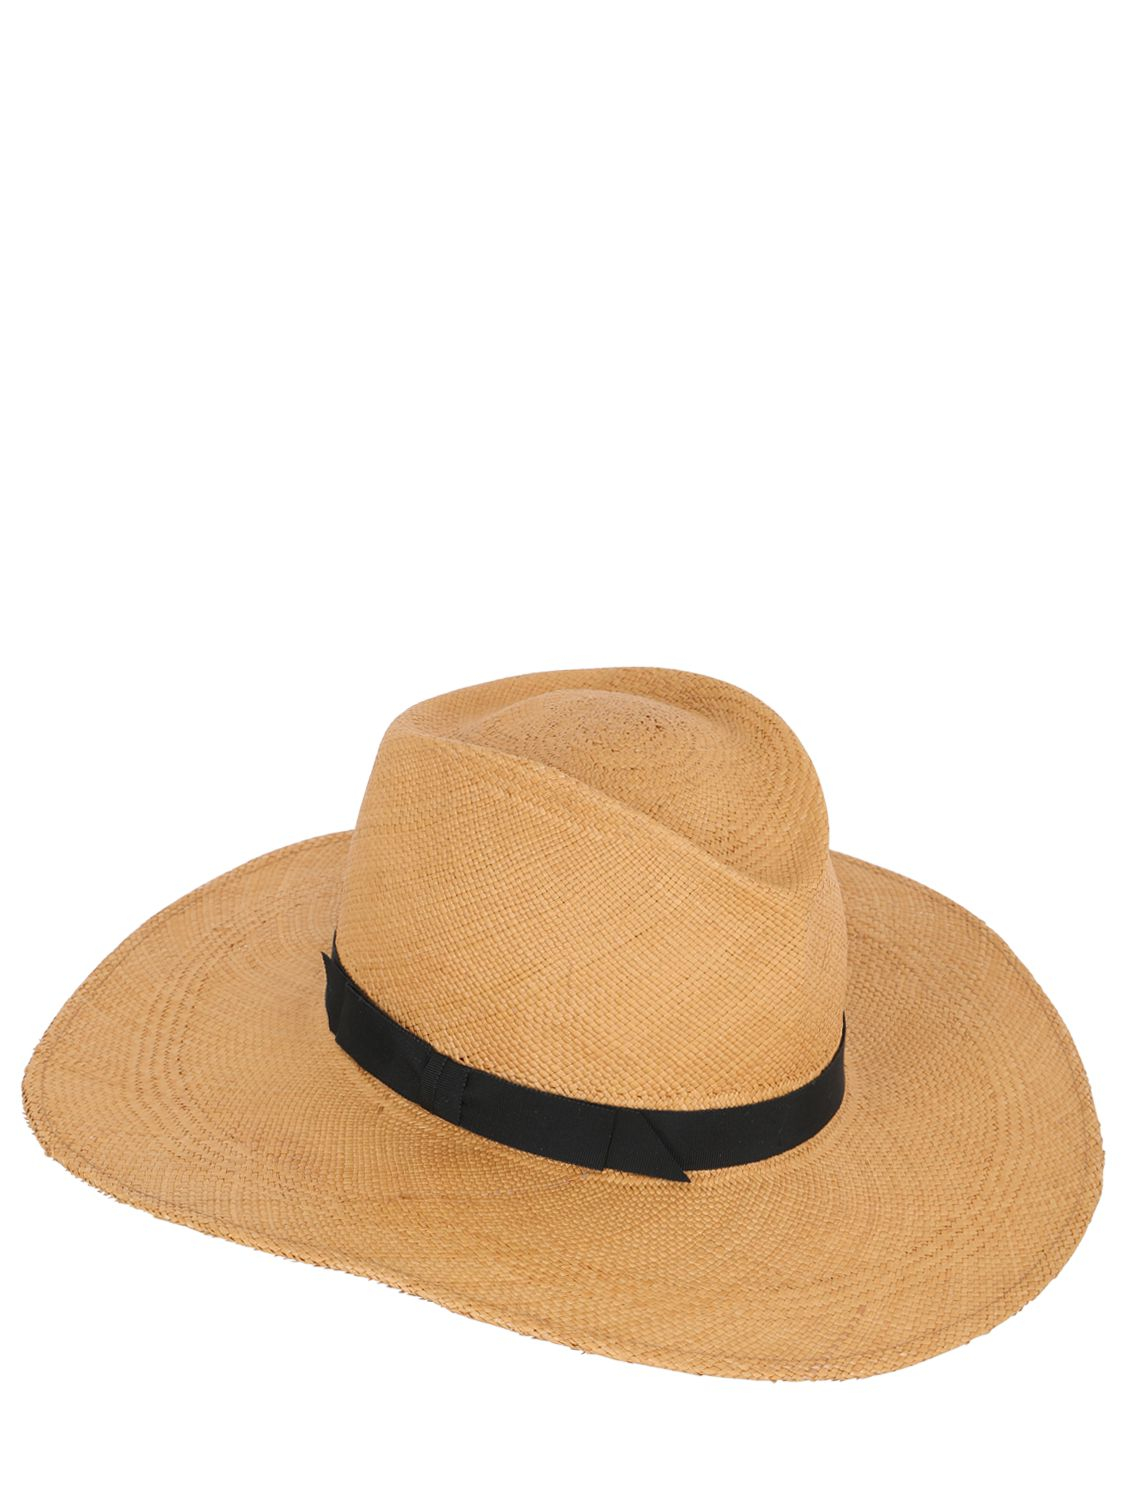 Lyst - Gladys Tamez Millinery The Jackie O Panama Straw Hat in Natural 191ecd1ef3b1